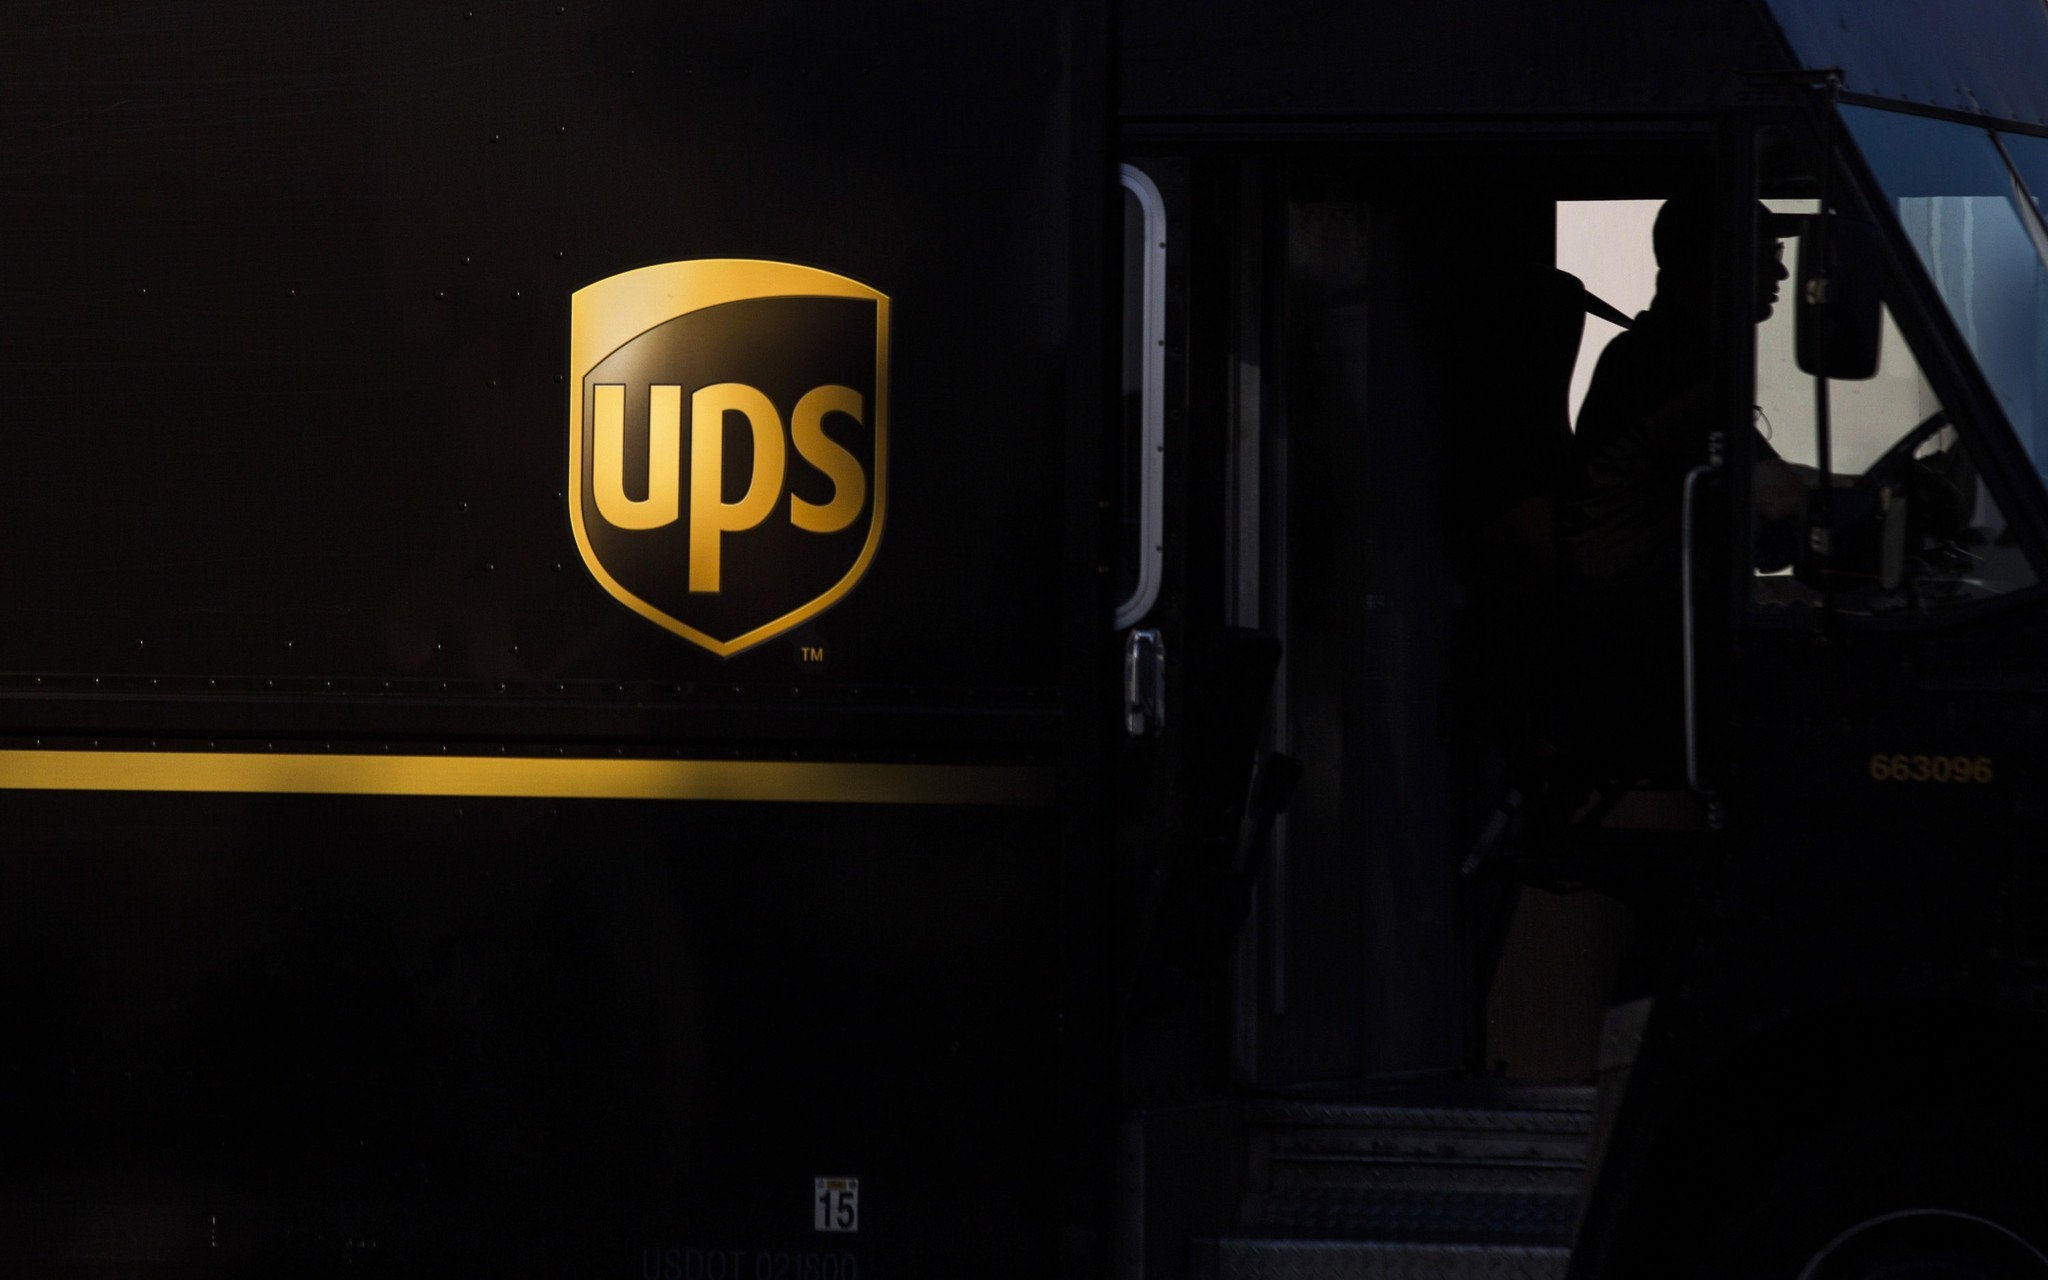 ups fedex scrambling to deliver late christmas packages orlando sentinel. Black Bedroom Furniture Sets. Home Design Ideas